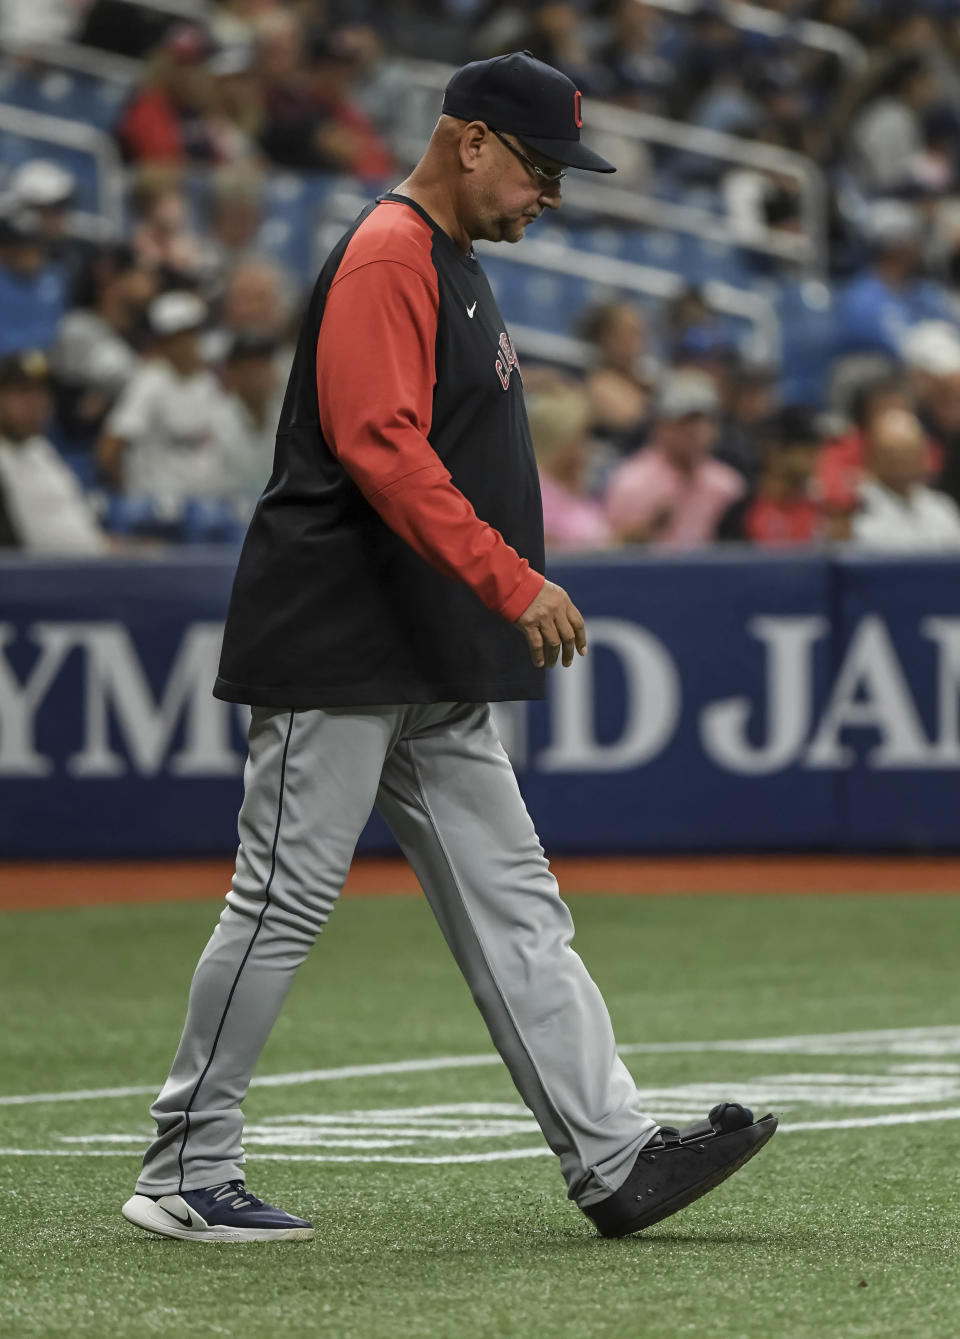 Cleveland Indians manager Terry Francona walks to the mound to make a pitching change during the fifth inning against the Tampa Bay Rays in the second baseball game of a doubleheader Wednesday, July 7, 2021, in St. Petersburg, Fla.(AP Photo/Steve Nesius)